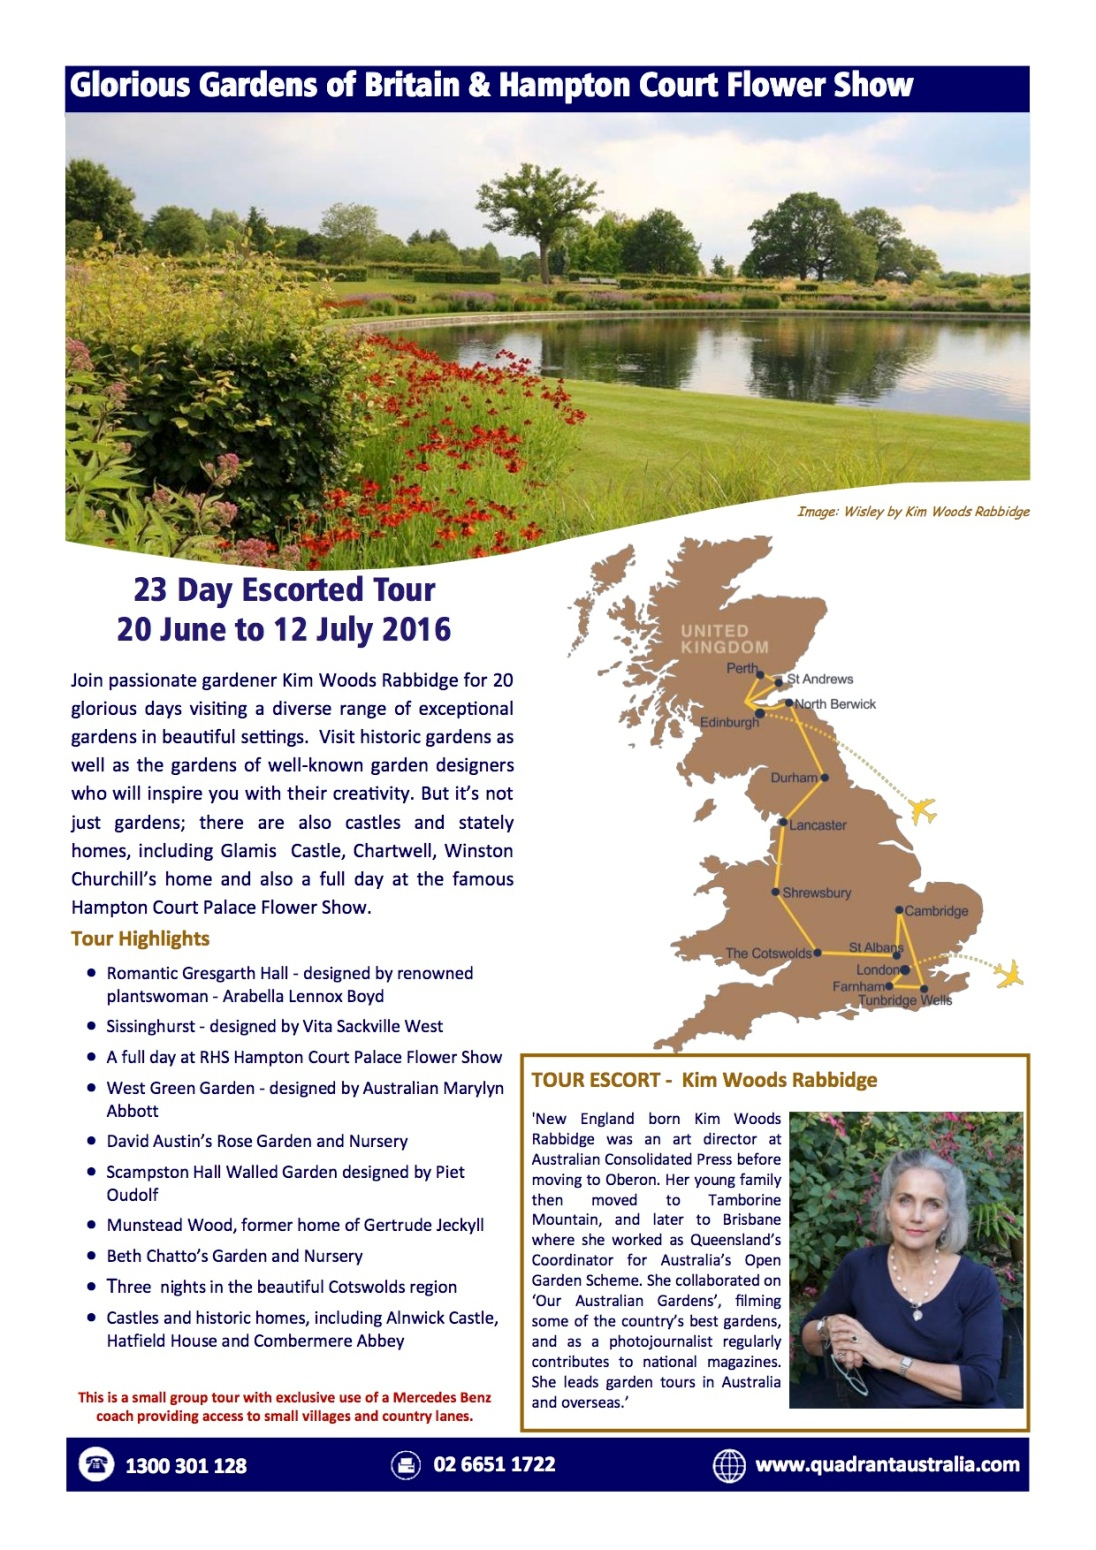 Glorious Gardens A4 & Booking Form